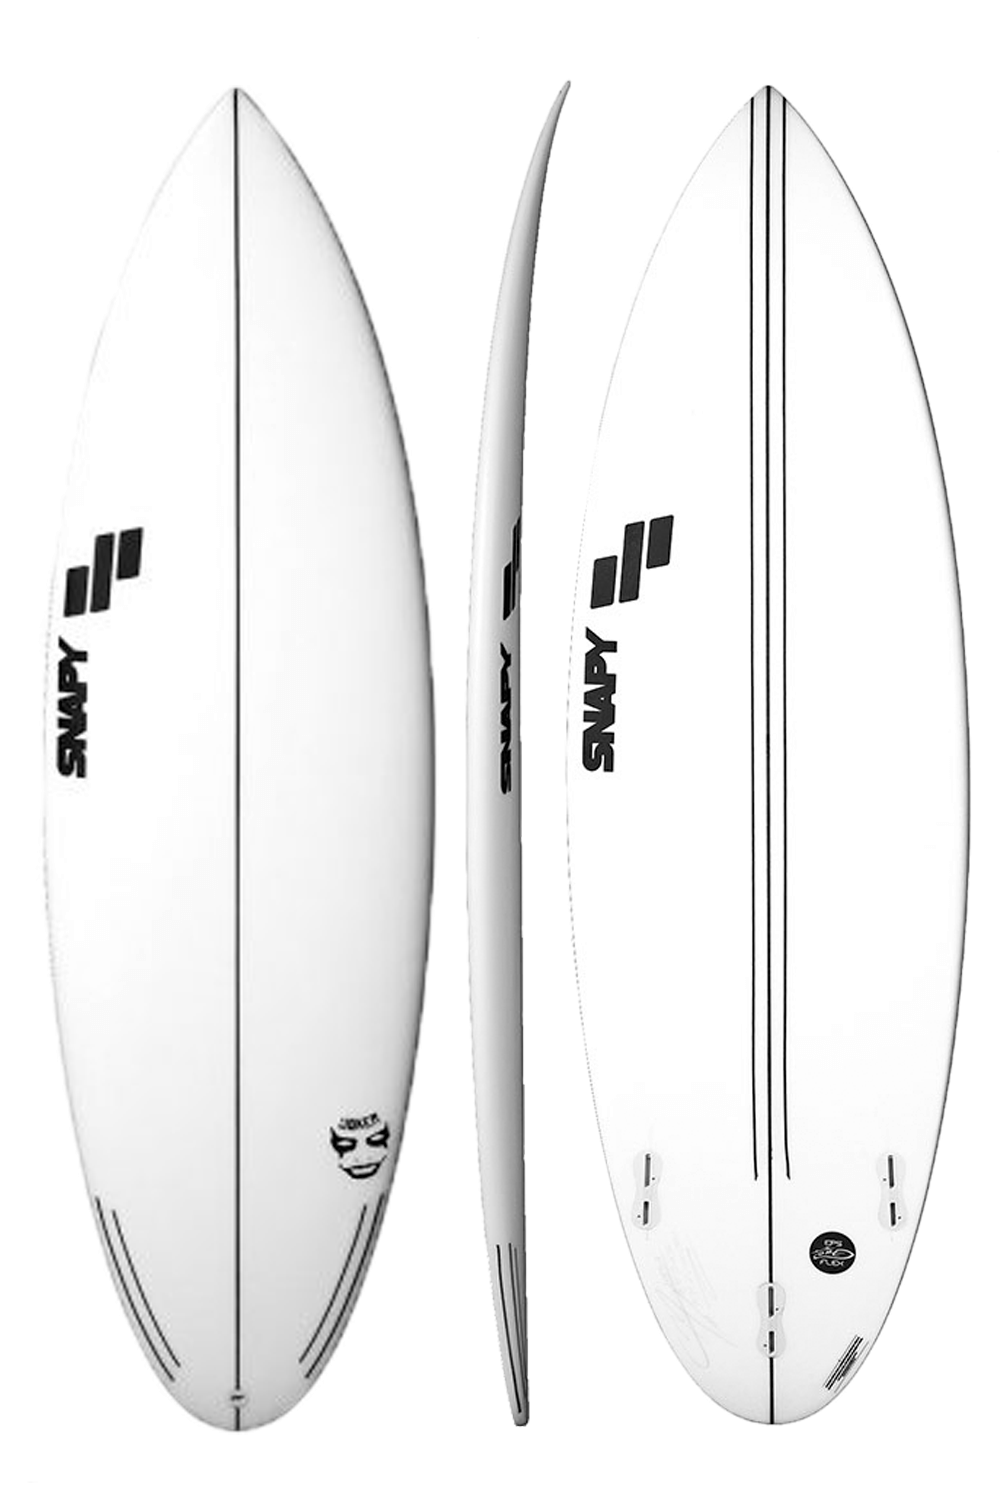 Joker | SNAPY SURFBOARDS